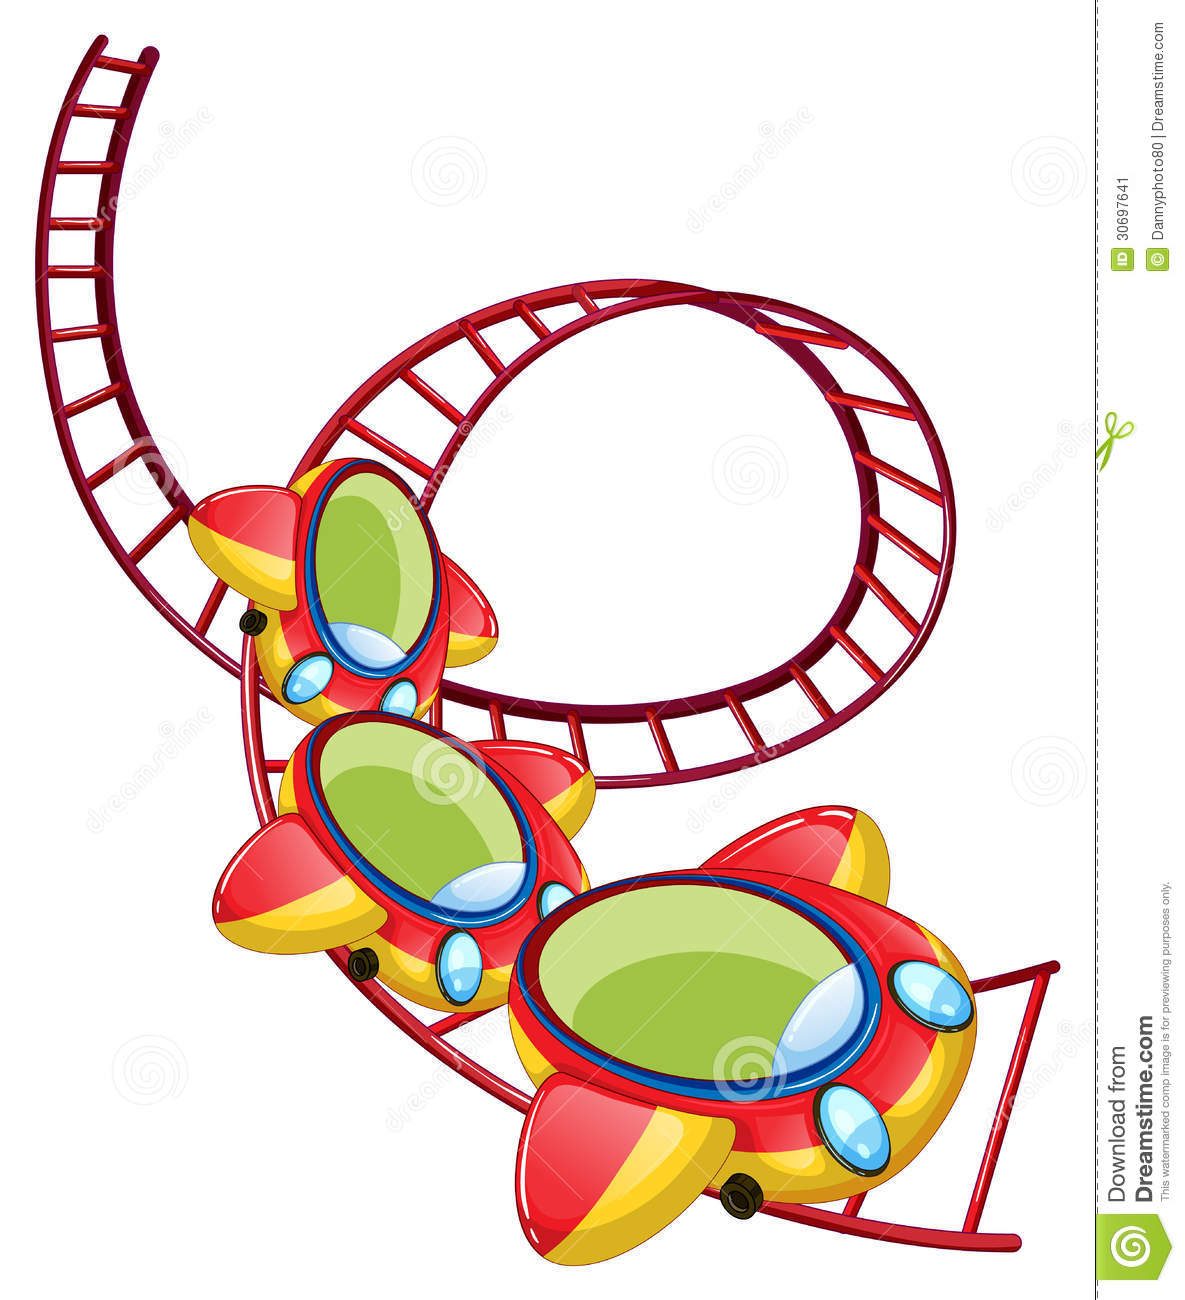 a roller coaster ride stock vector illustration of graphic 30697641 rh dreamstime com roller coaster clipart black and white roller coaster clip art free